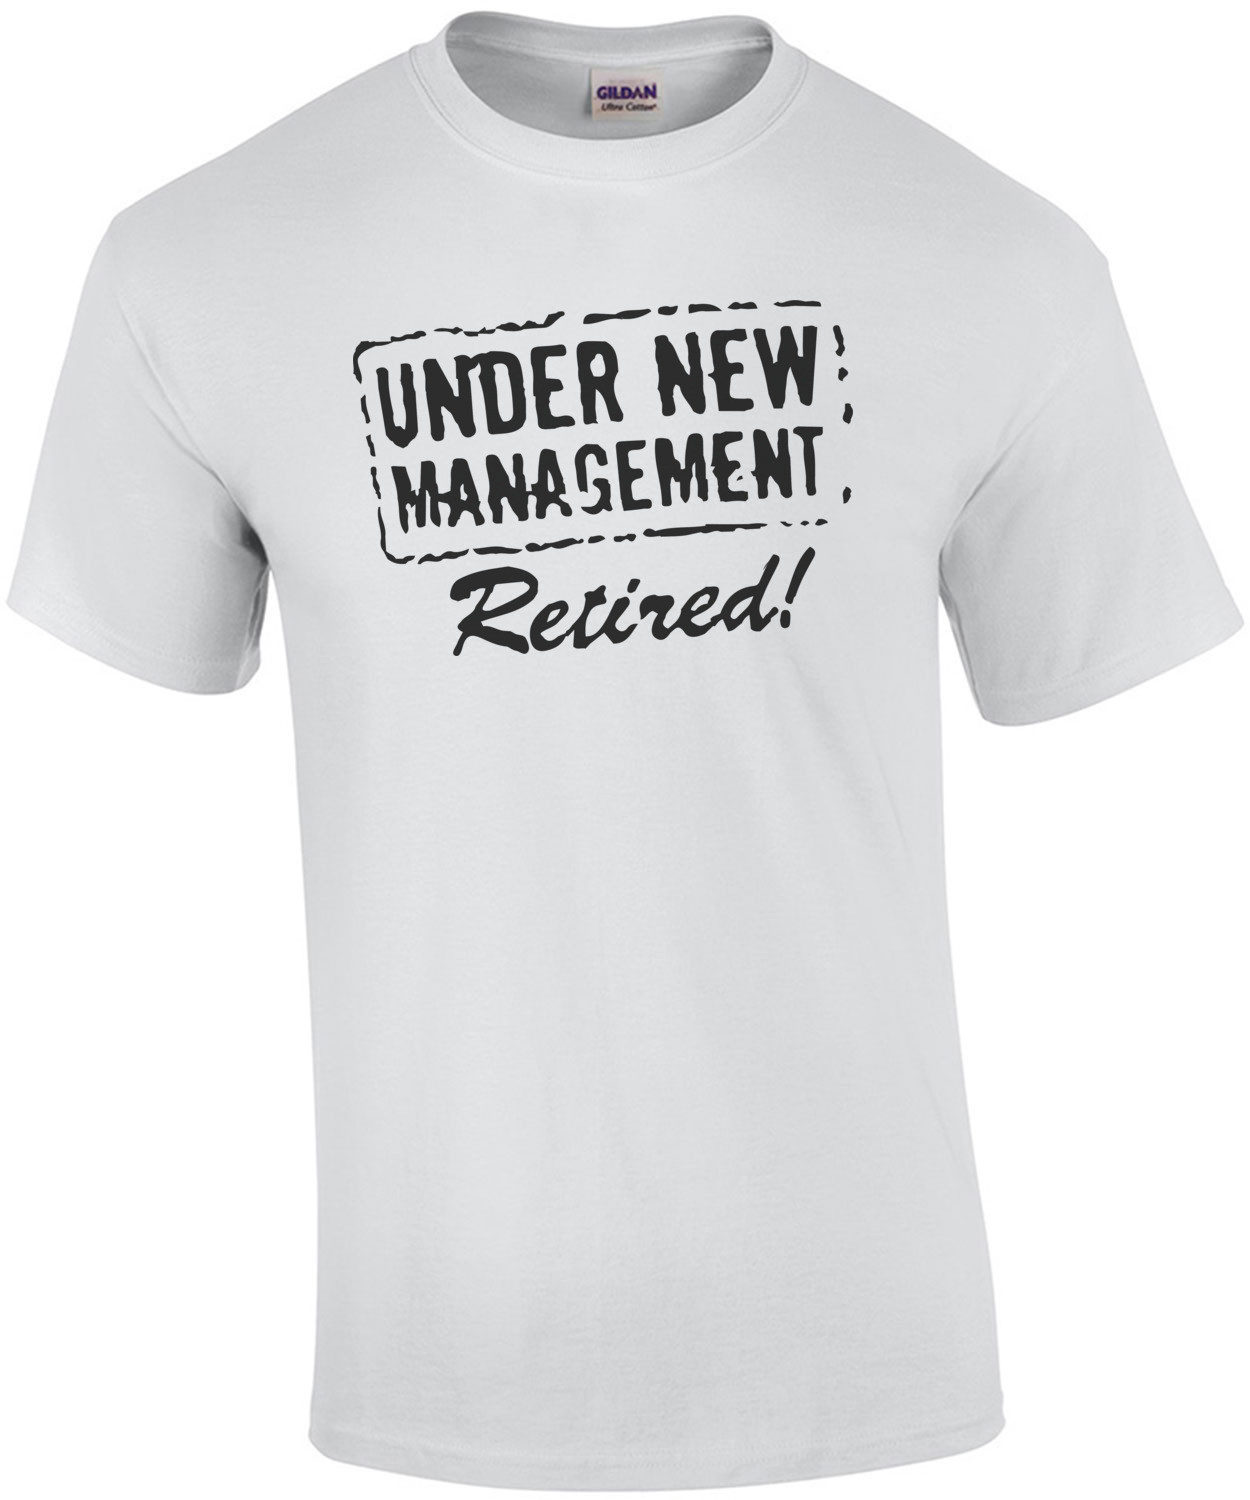 Under New Management. Retired. T-Shirt